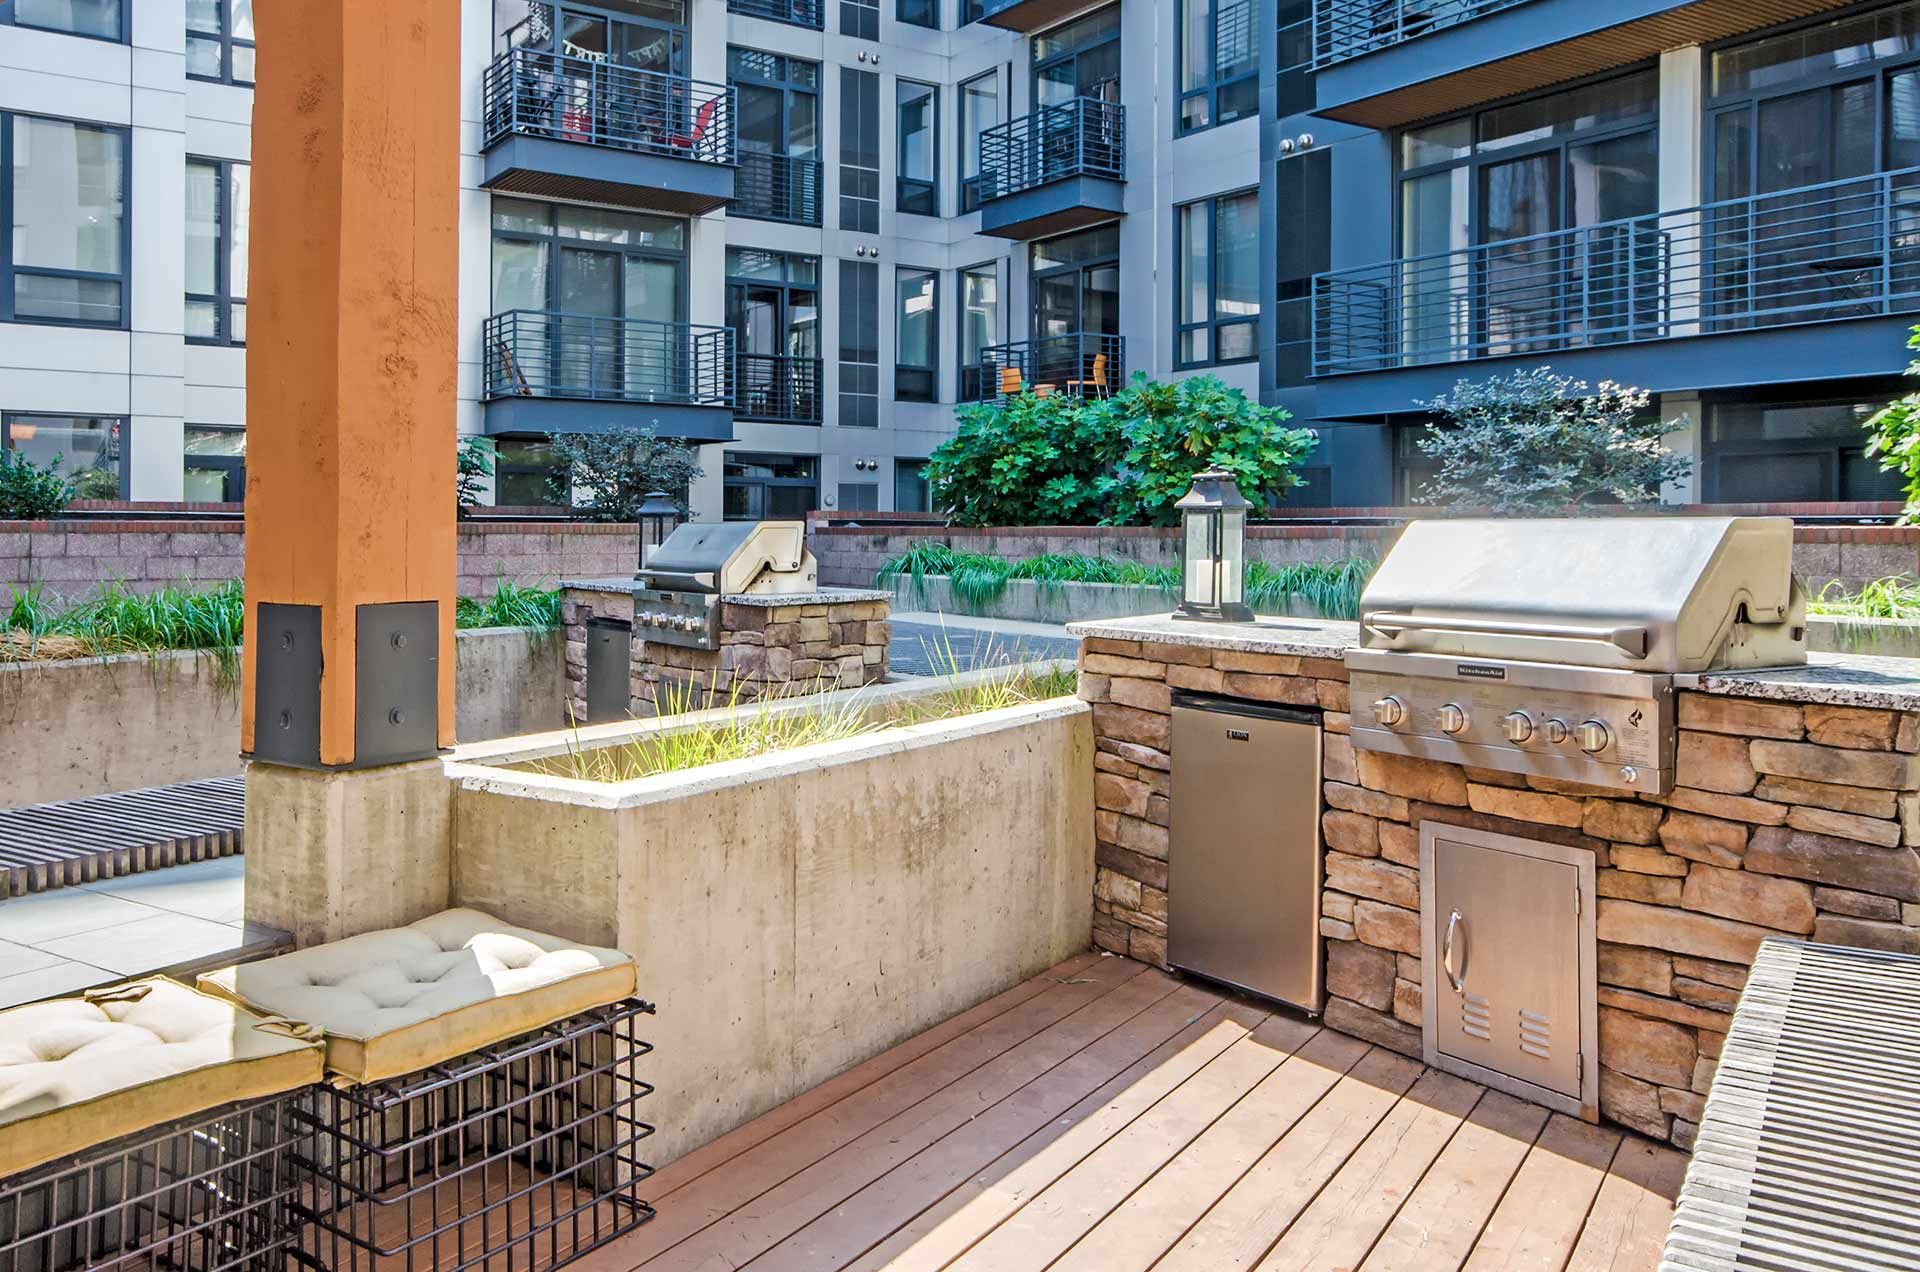 Interior courtyard closeup of grilling stations with nearby bench seating